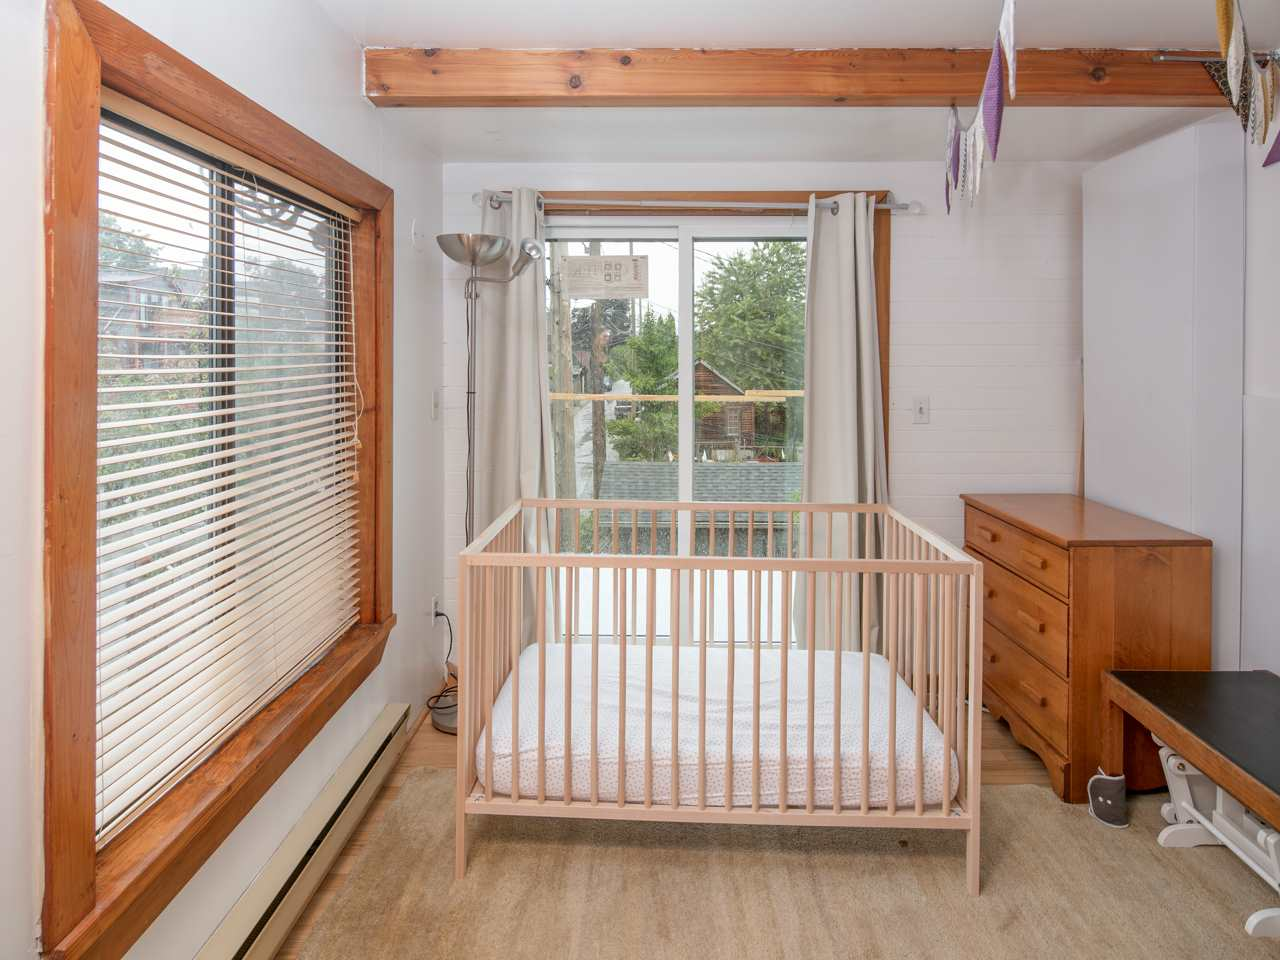 "Photo 7: 730 HAWKS Avenue in Vancouver: Mount Pleasant VE Townhouse for sale in ""Hawks Green"" (Vancouver East)  : MLS(r) # R2179039"